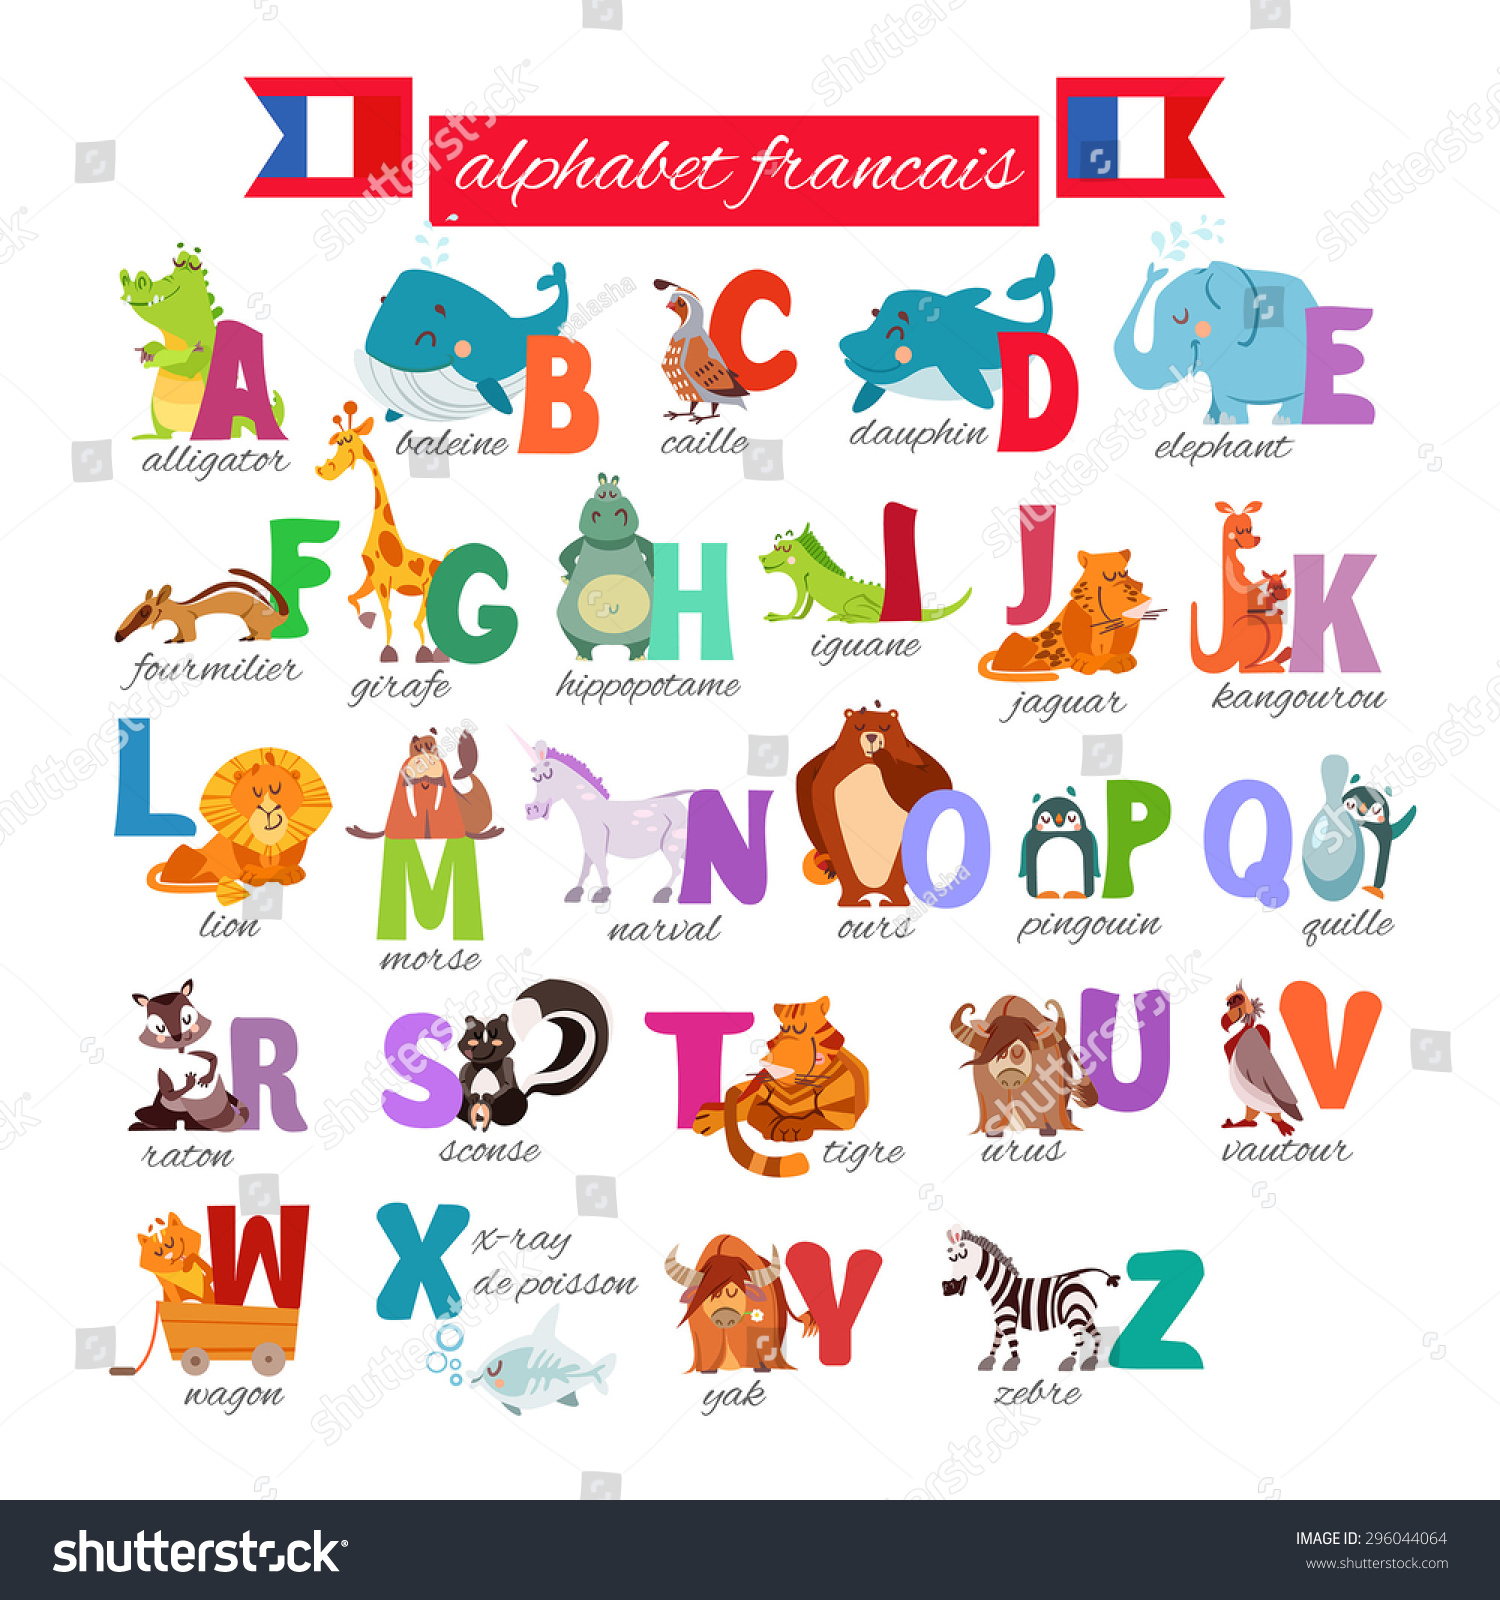 Cute Cartoon French Illustrated Alphabet Animals Stock